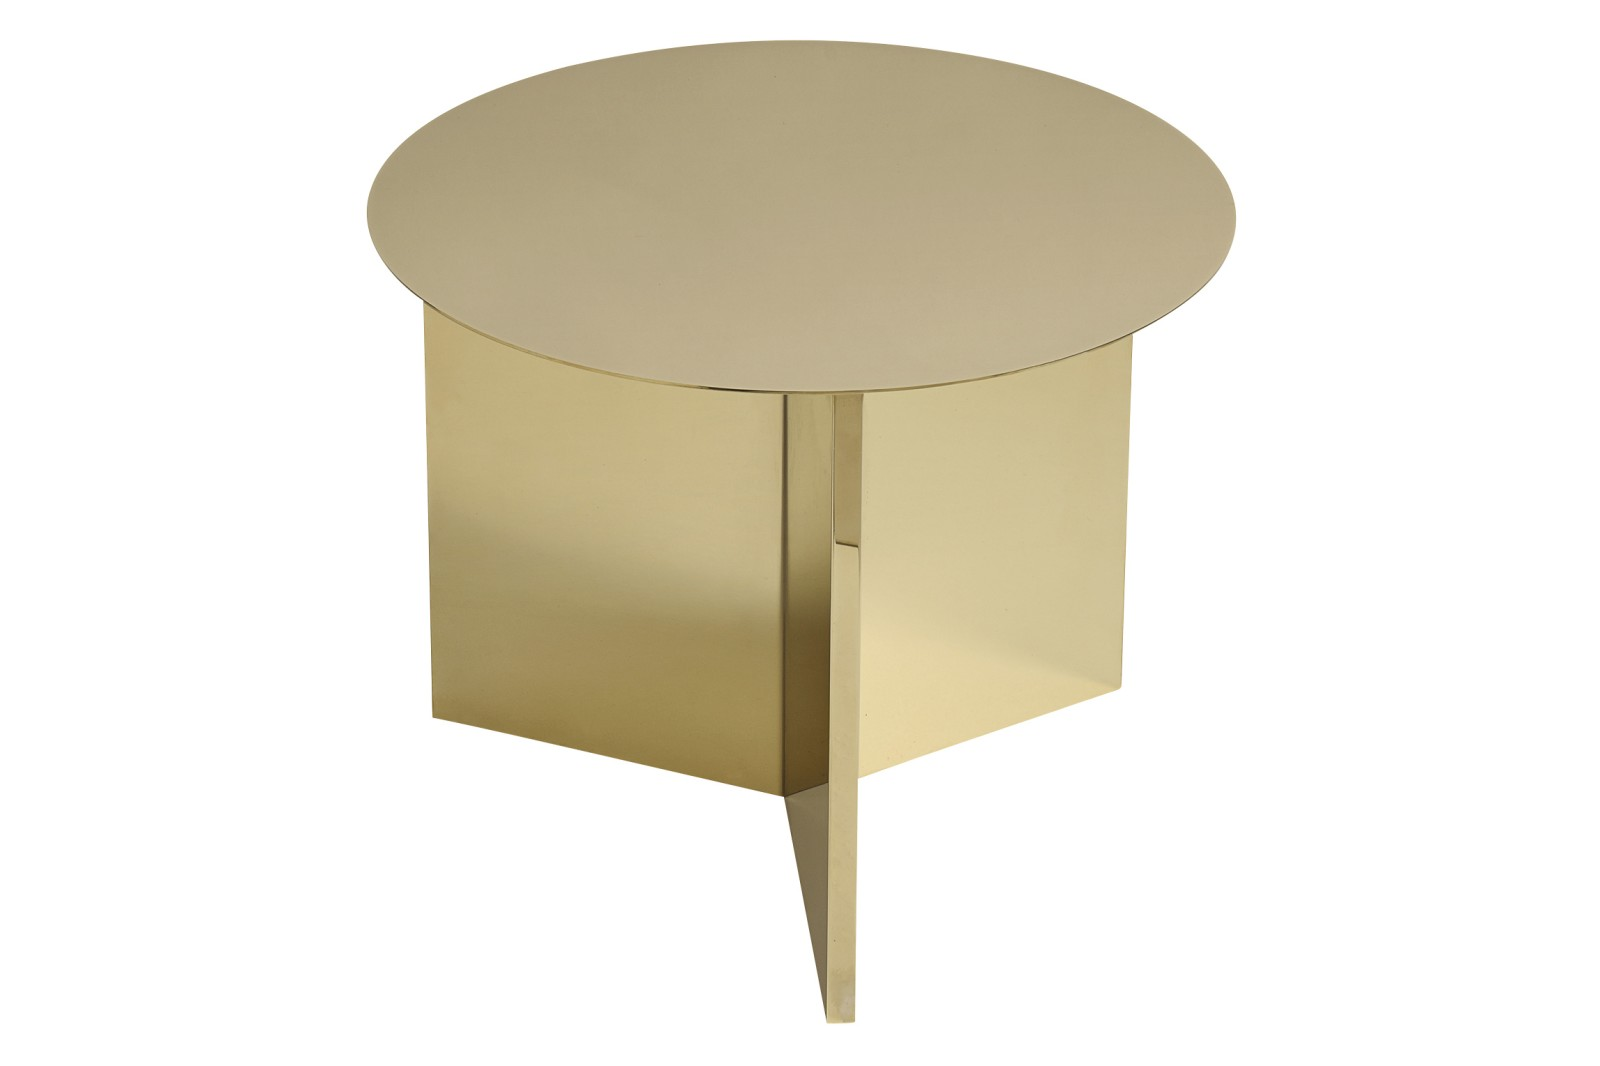 Slit Round Side Table Brass, 045 cm